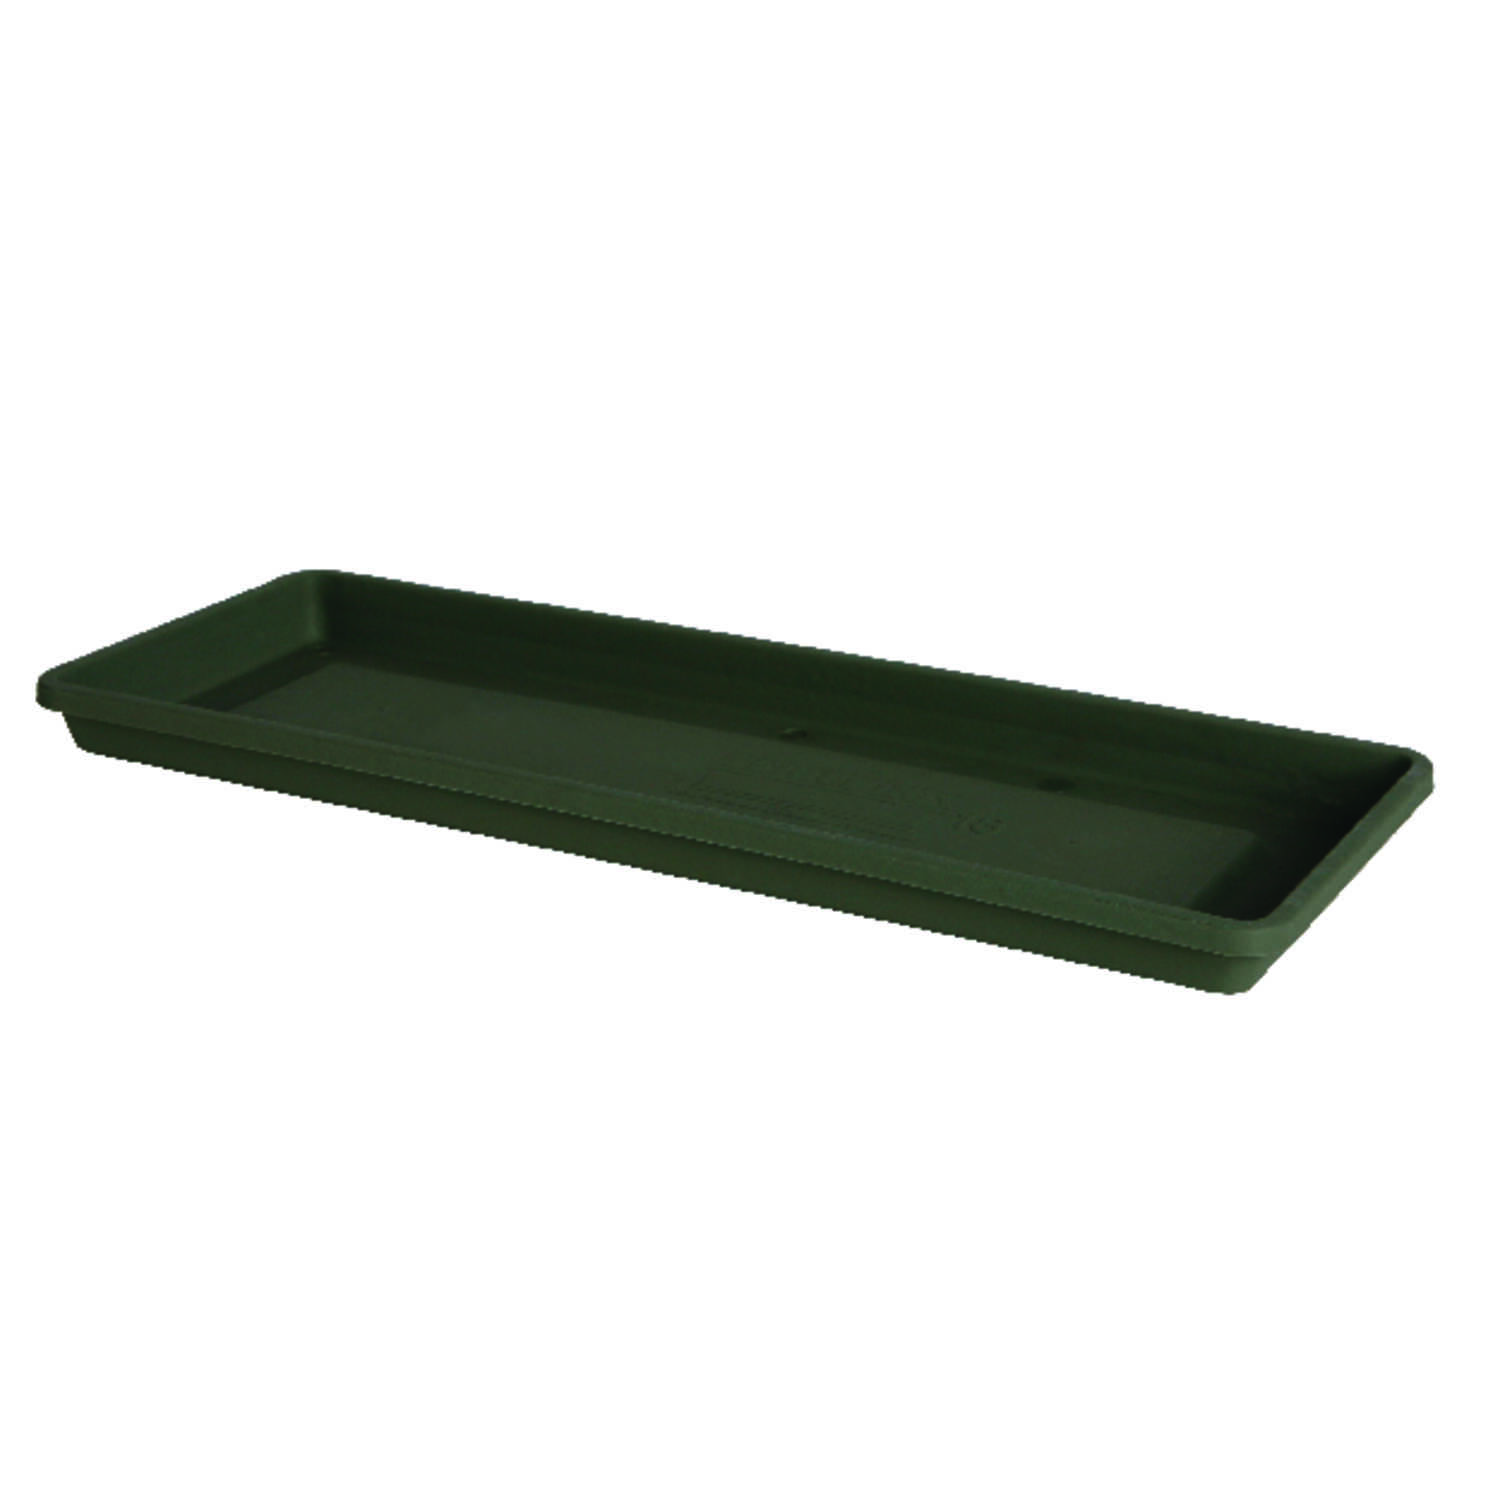 Bloem  Terrabox  1.2 in. H Thyme Green  Resin  Traditional  Tray